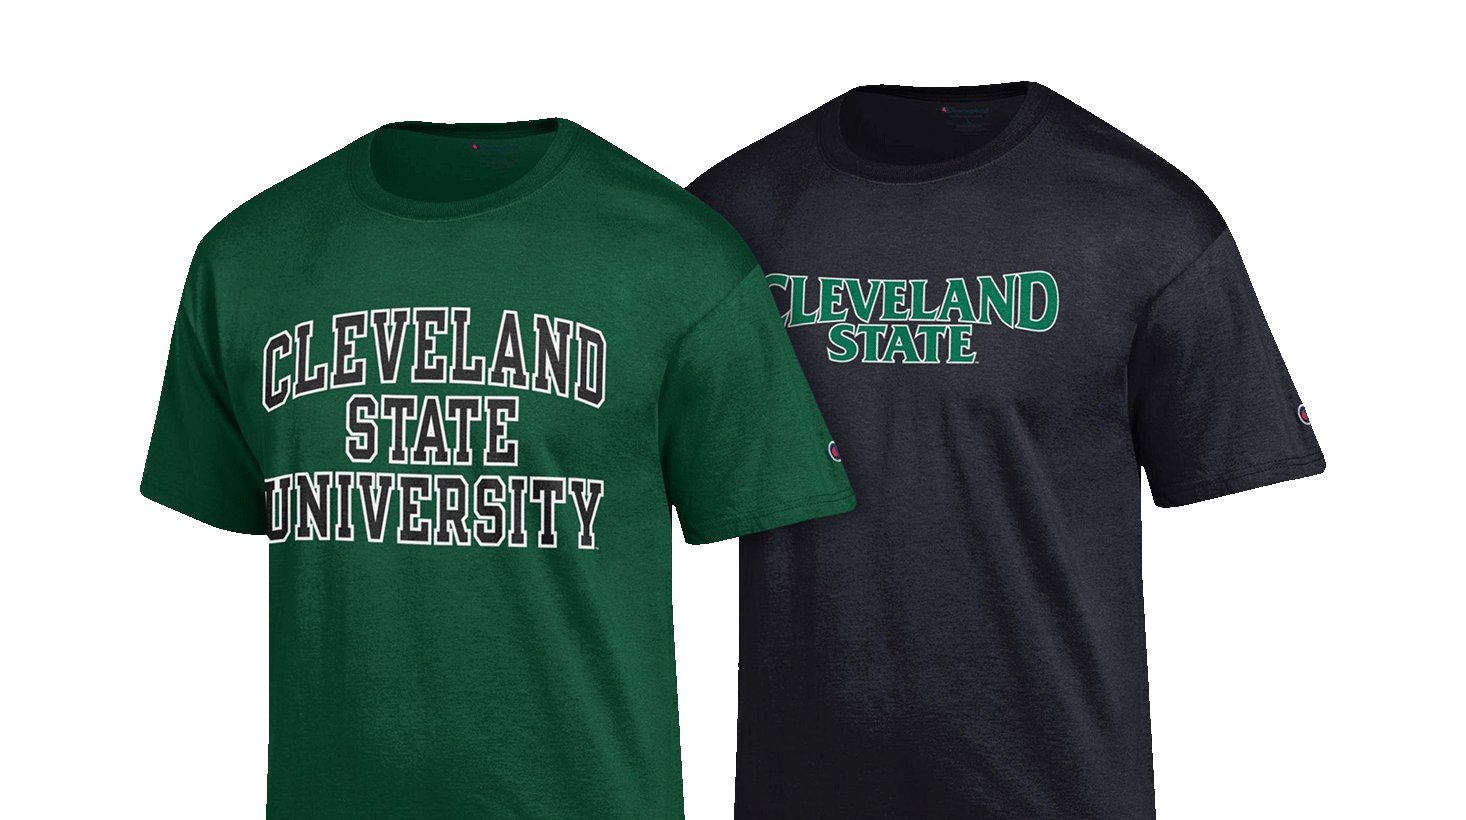 062715ba2 Viking Outfitter – Cleveland State University Apparel, Merchandise ...